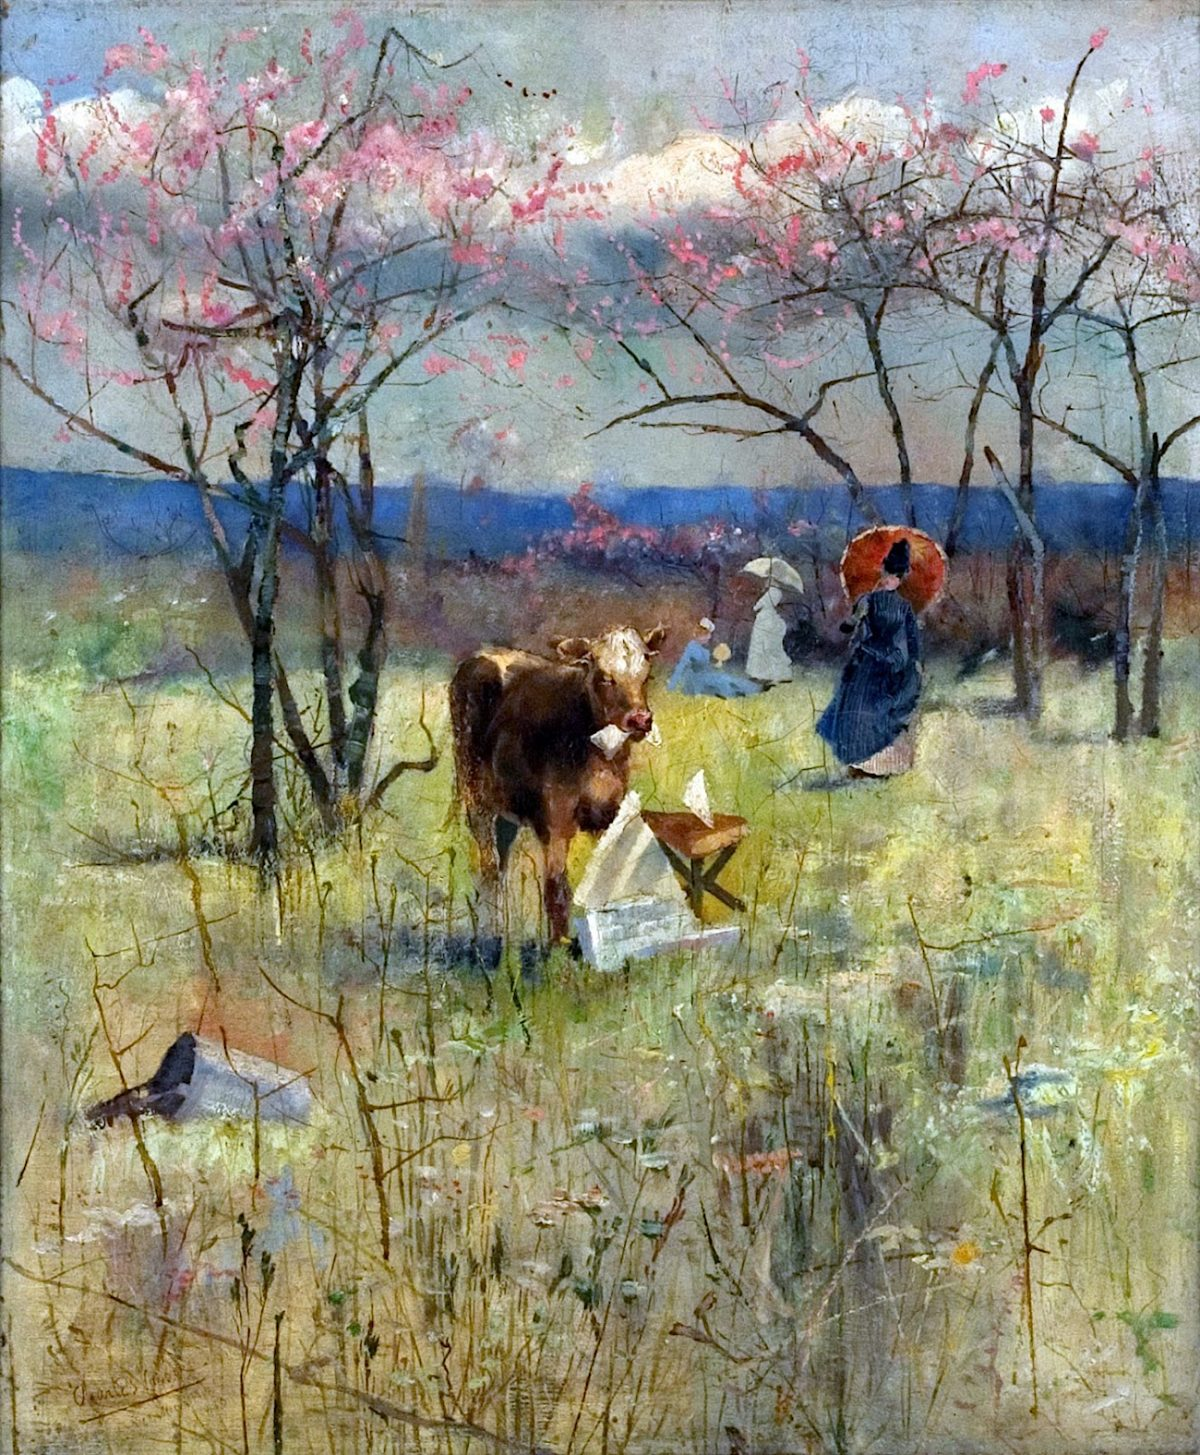 Charles Conder, painting, early taste for literature